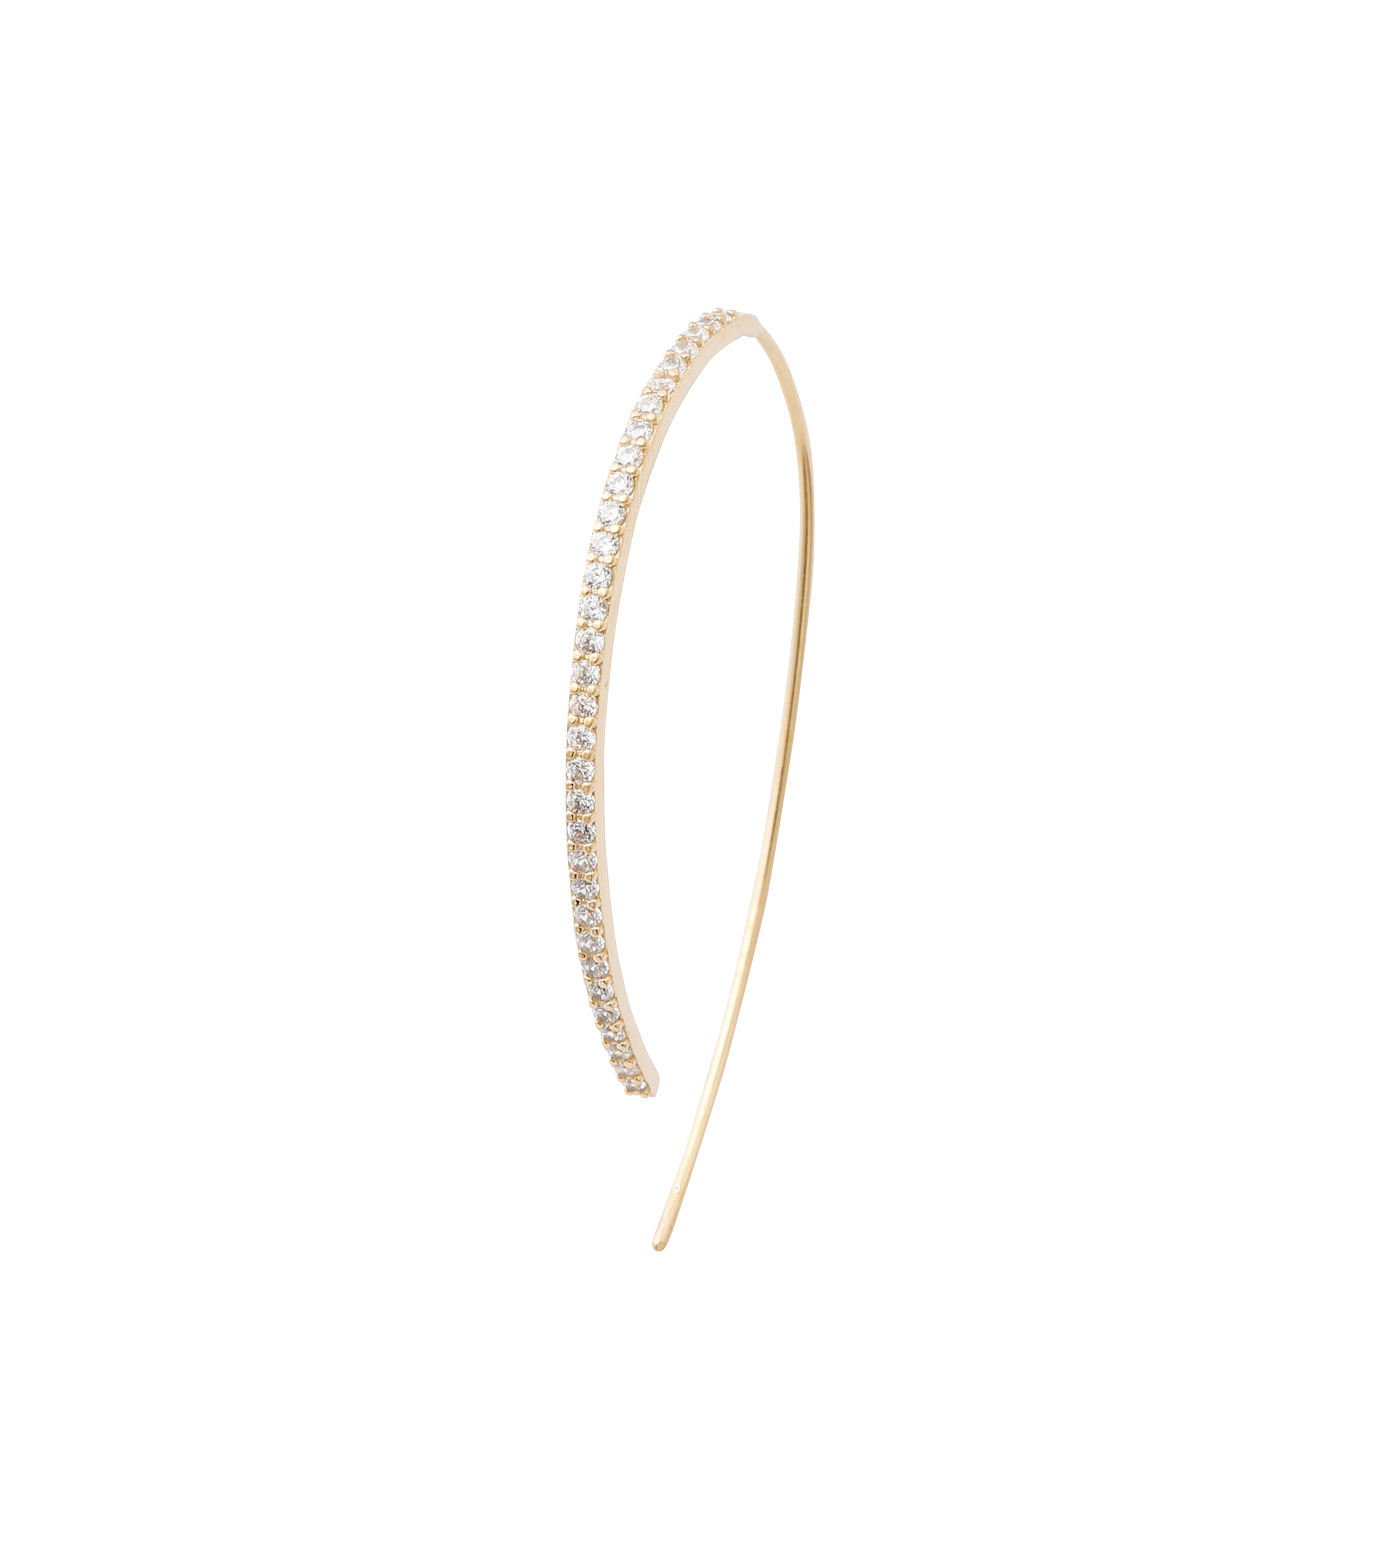 Fallon(ファロン)のPave Threaded Hoops-GOLD-FE11626-2 拡大詳細画像3